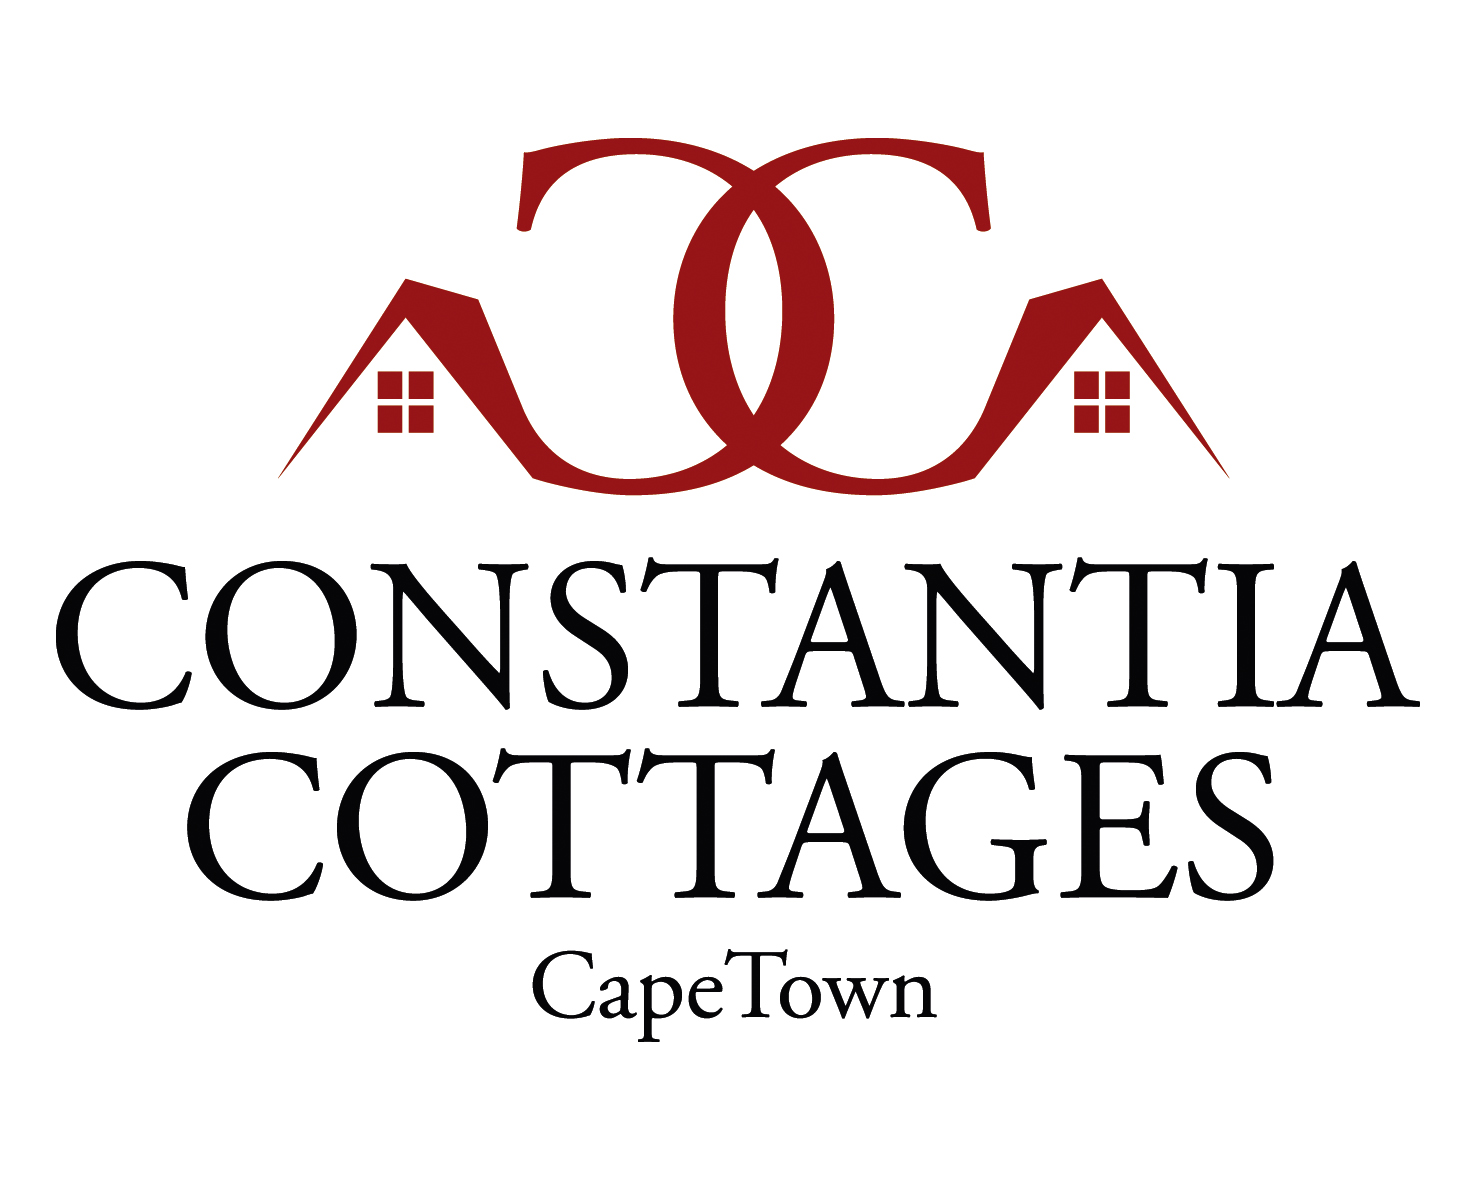 Constantia Cottages